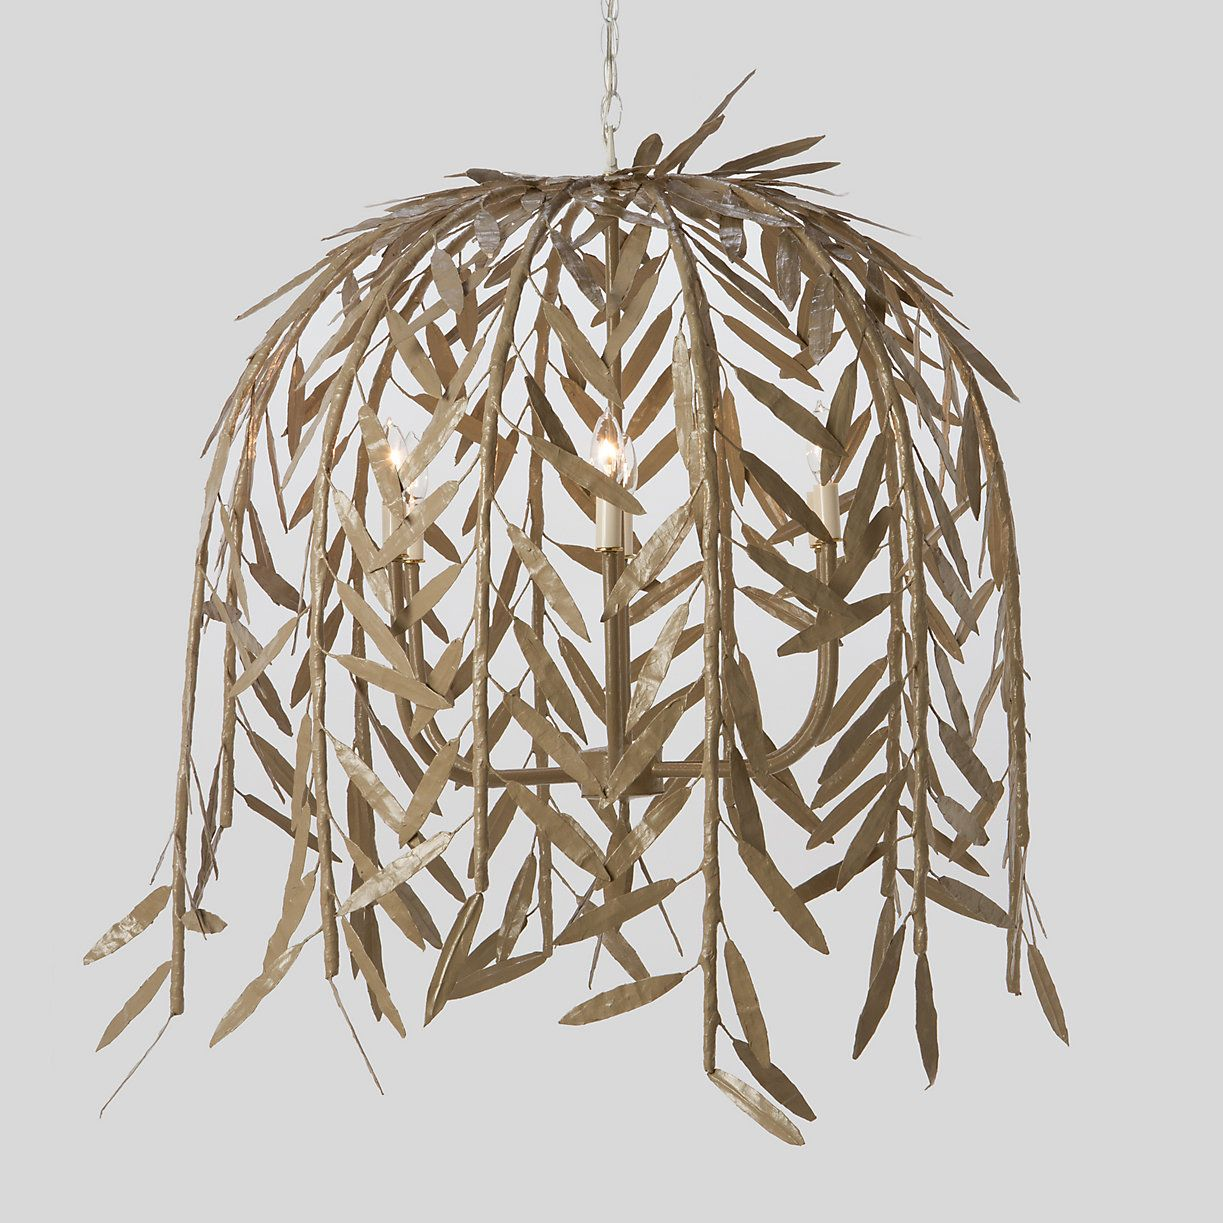 re:pin BKLYN contessa :: Terrain :: Weeping Willow Chandelier